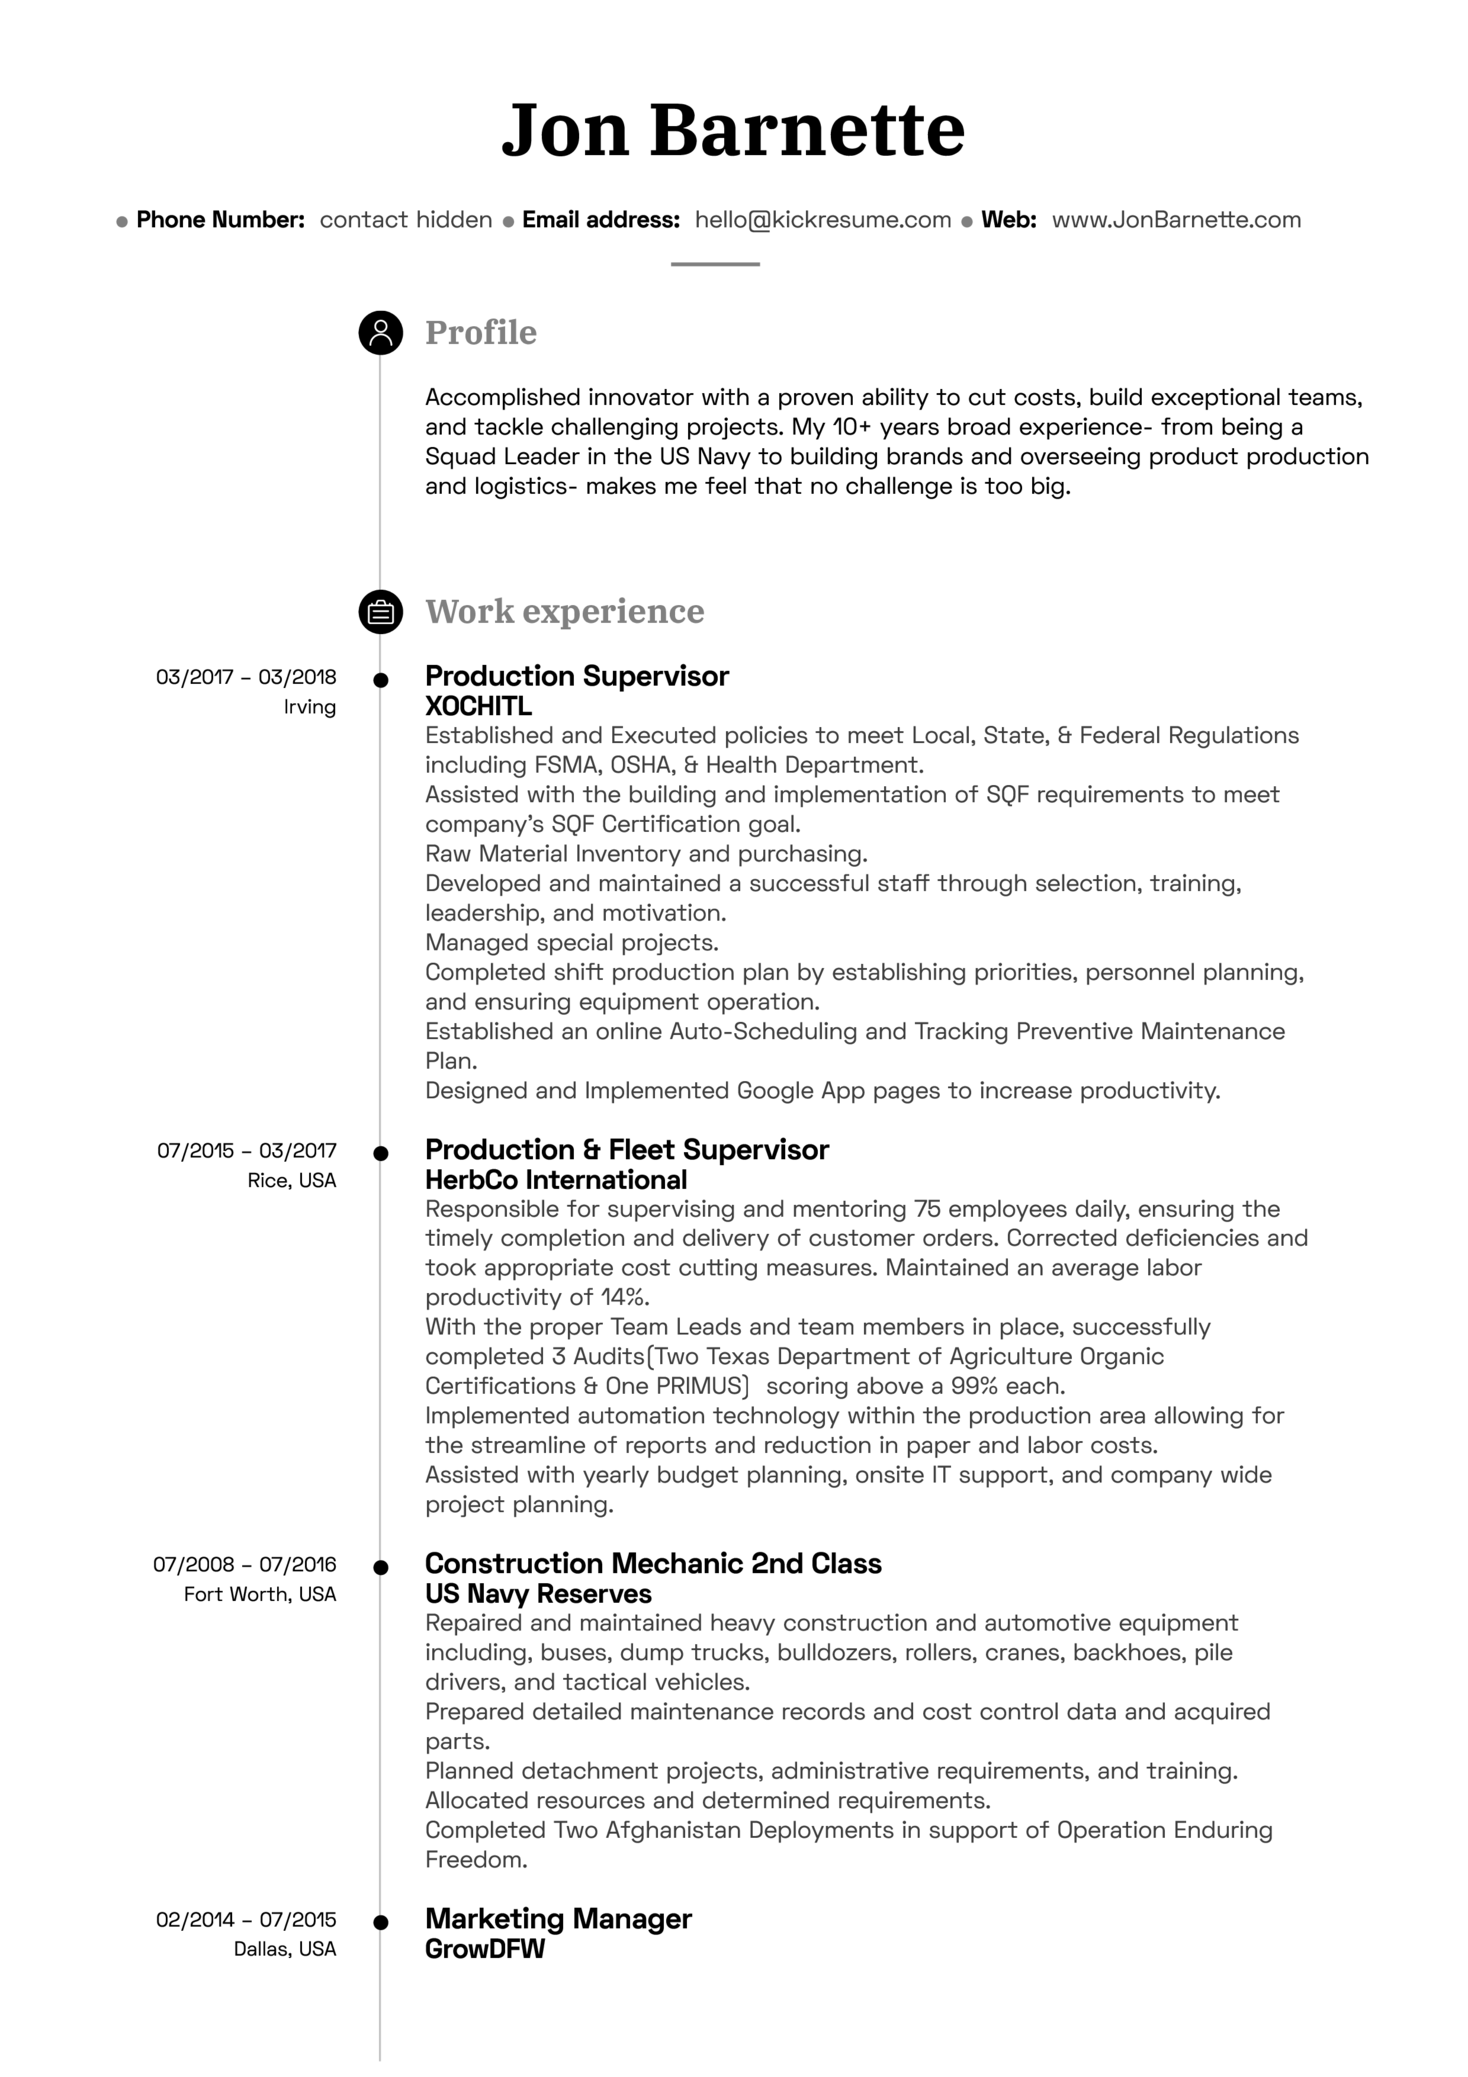 Production manager resume example | Resume samples | Career help center